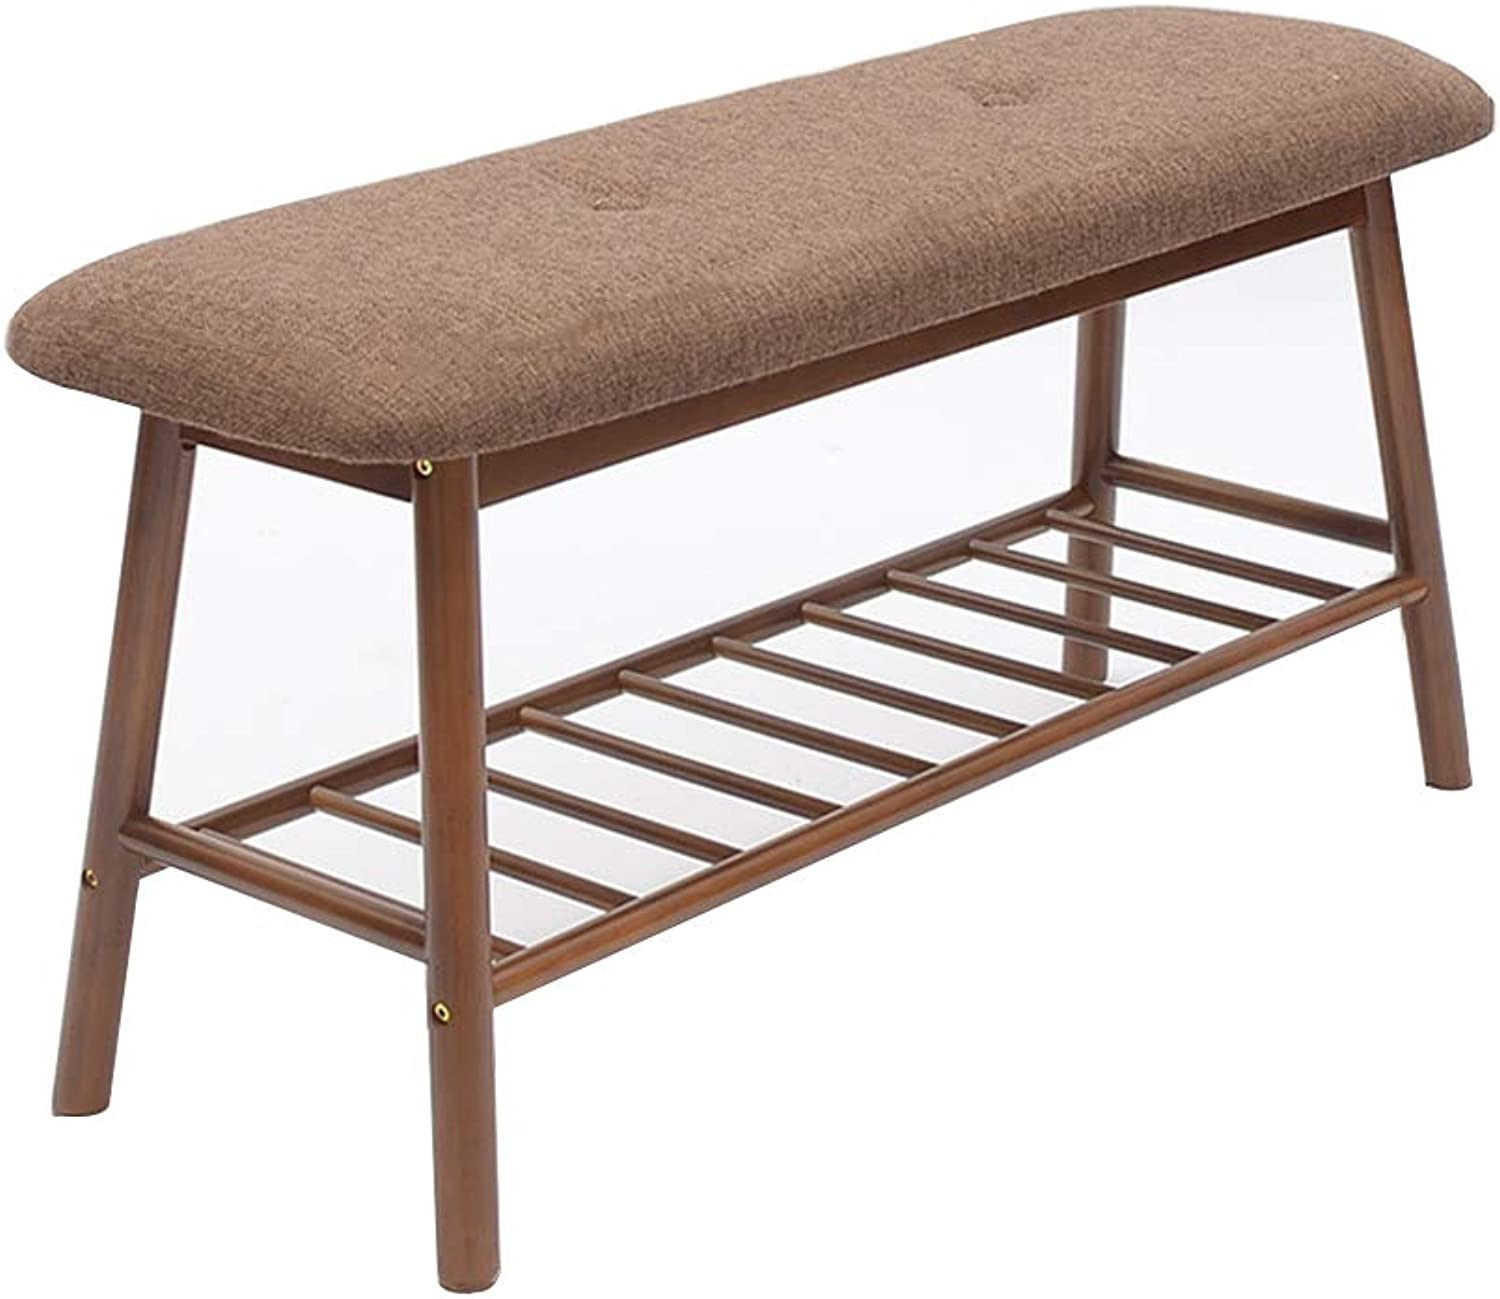 Multfunctional Bamboo Stool Seat with Storage Shelf Assembly Needed, Durable, Anti-Slip, Lightweight Chair for Living Room, Bedroom, Garden (color   Retro color, Size   84cm)